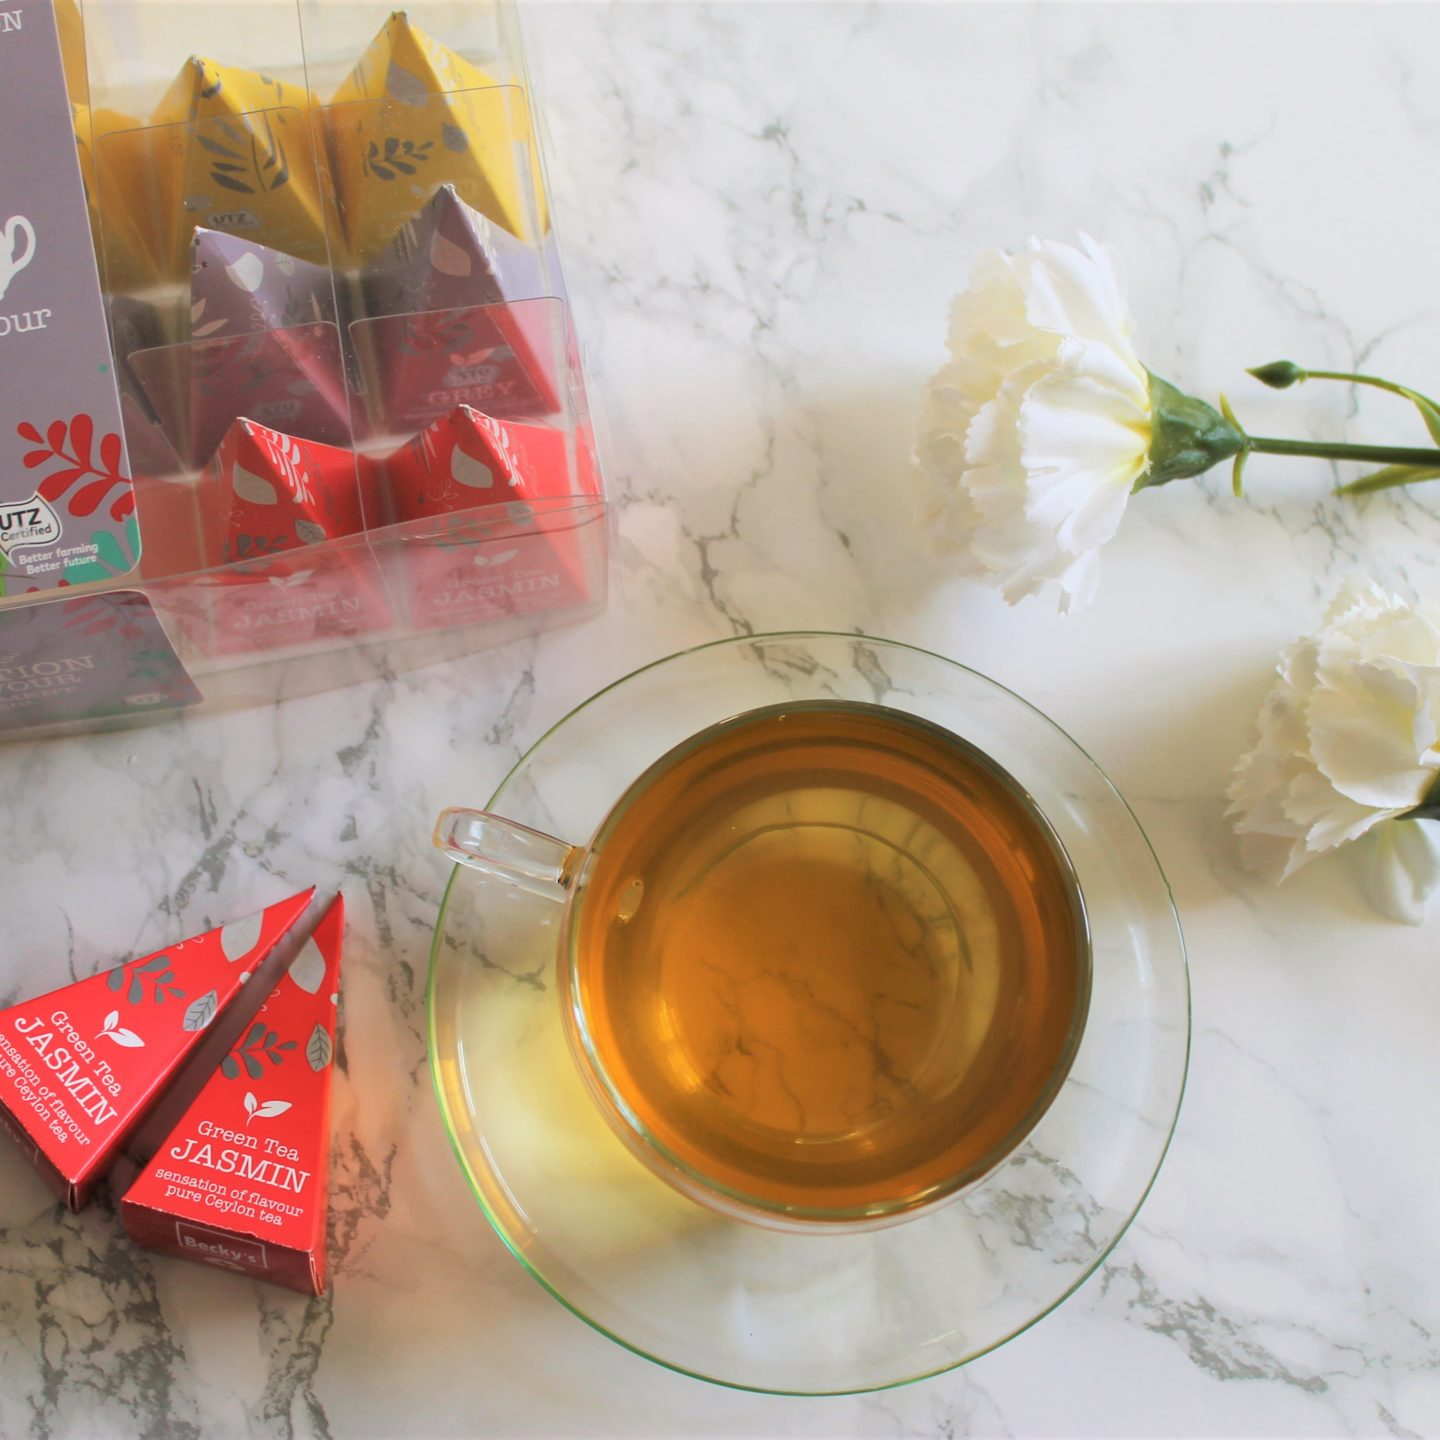 Becky's from Holland Green Tea Jasmin Review